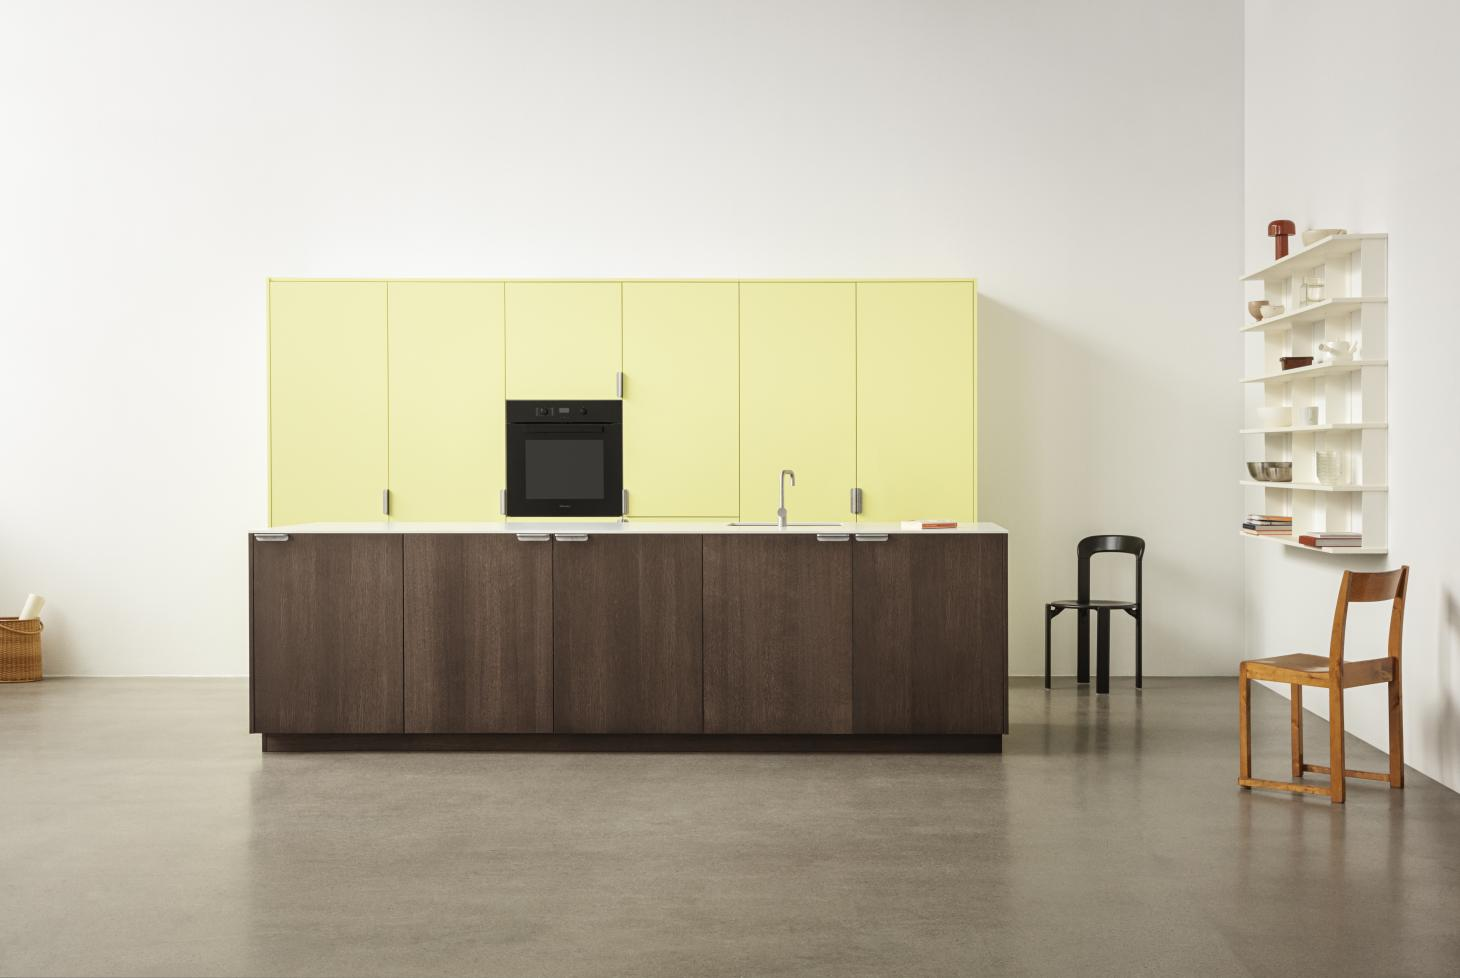 A large kitchen by Copenhagen based brand Reform, with tall canary yellow cupboards and a wooden island